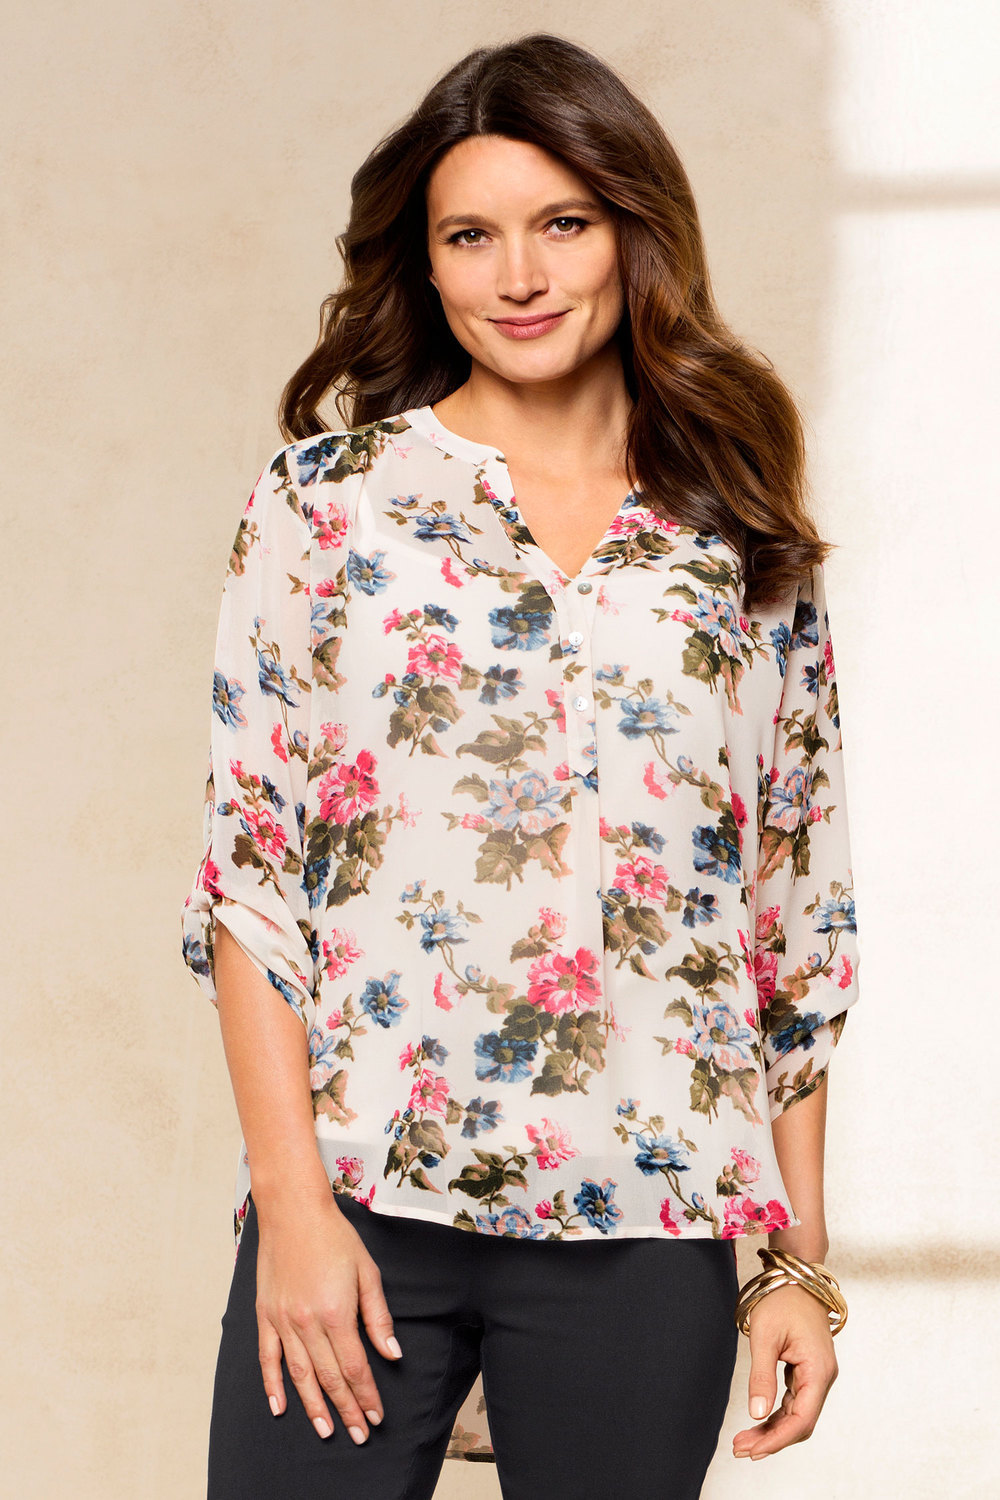 new ezibuy blouse capture tops blouses womens clothing